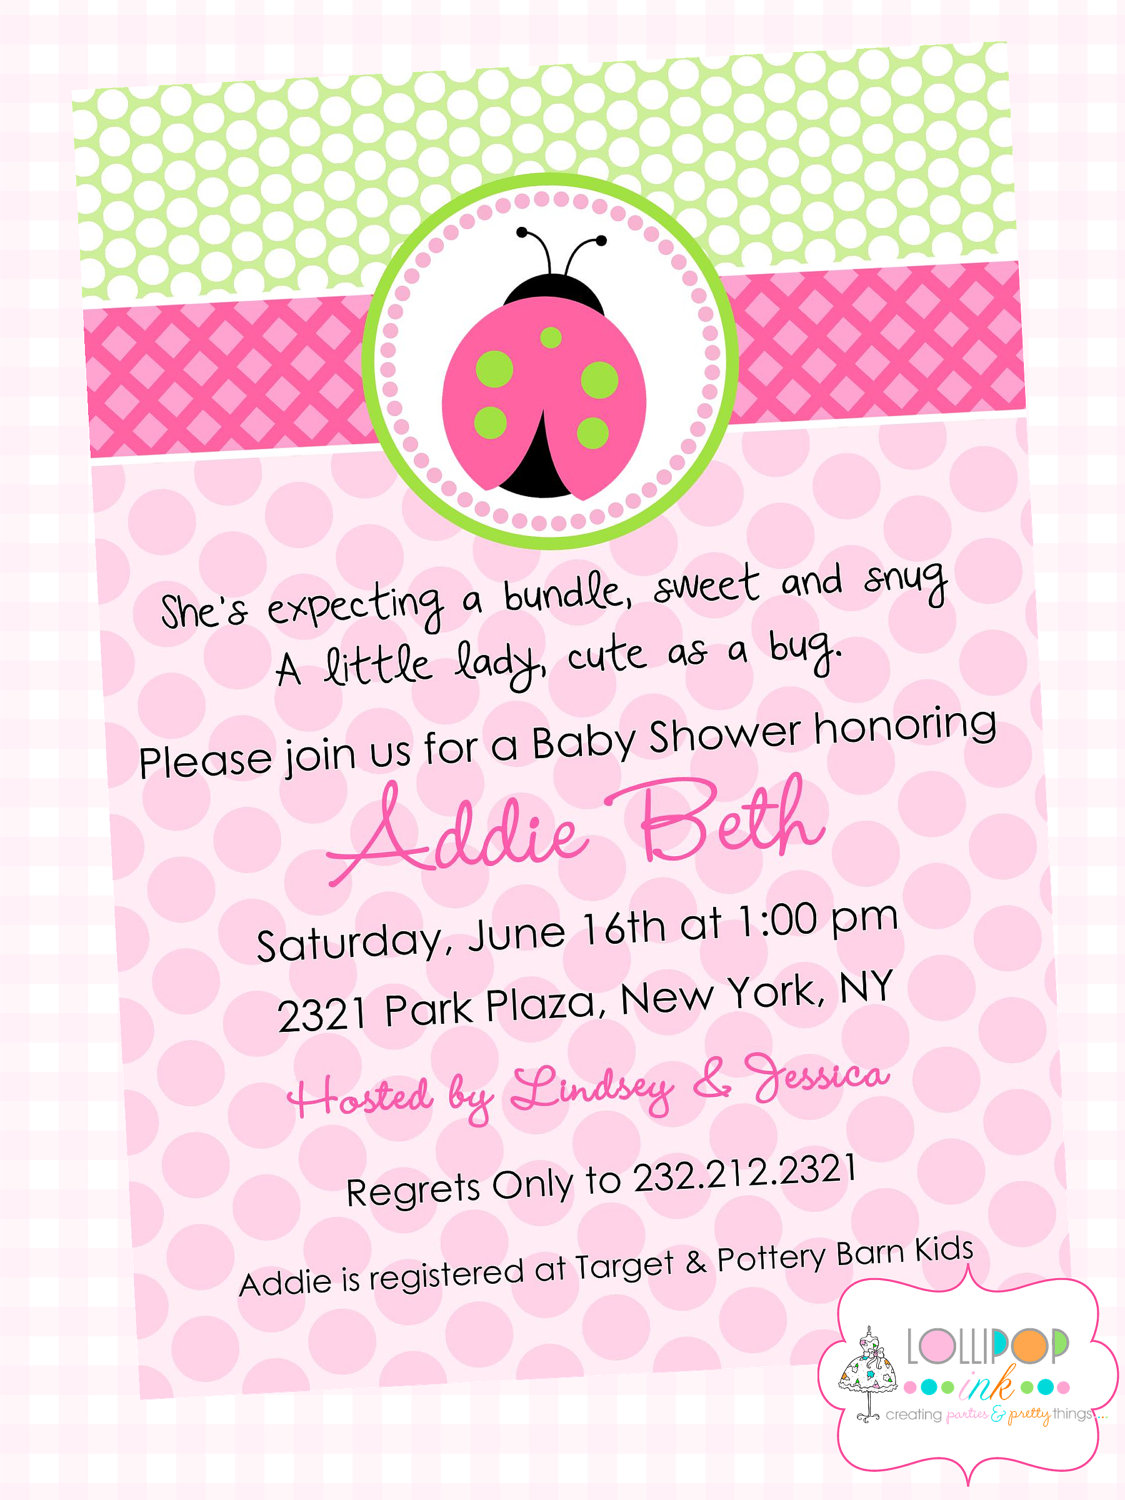 Full Size of Baby Shower:baby Shower Halls With Baby Shower At The Park Plus Recuerdos De Baby Shower Together With Fun Baby Shower Games As Well As Baby Shower Hostess Gifts And Baby Shower Verses Baby Shower Invitation Wording Baby Shower Invitations Wording To Make Adorable Baby Shower Invitation Design Online 41020165